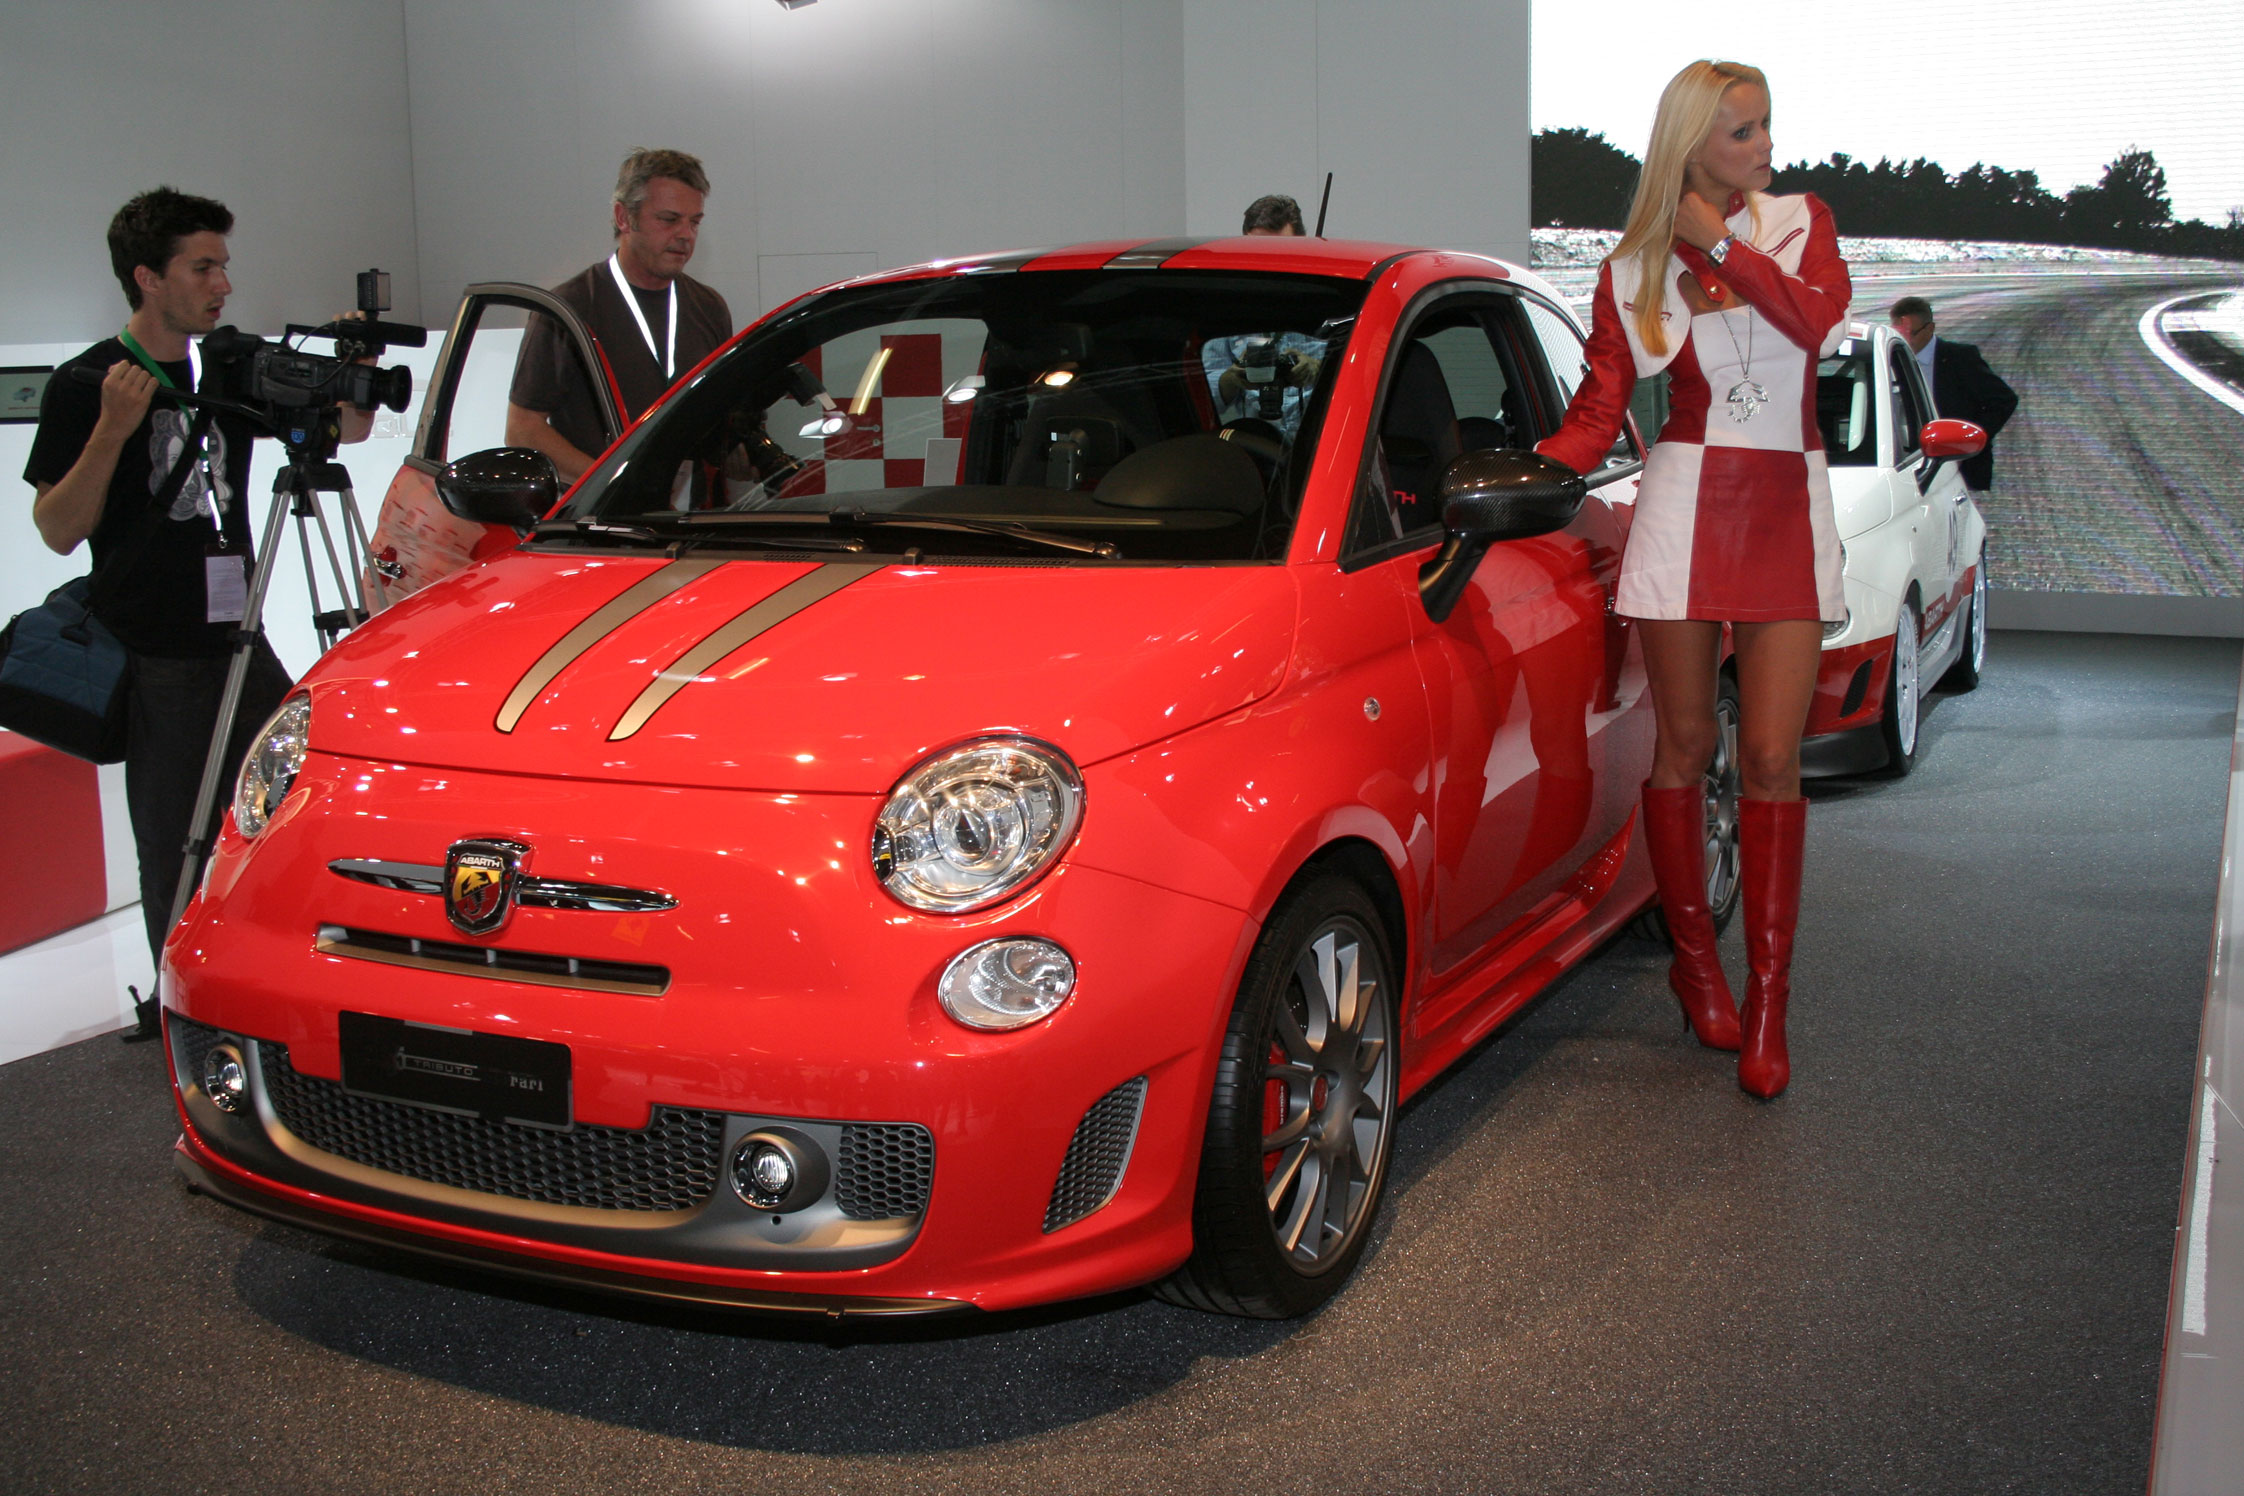 fiat 500 abarth 695 tributo ferrari salon de francfort 2009. Black Bedroom Furniture Sets. Home Design Ideas